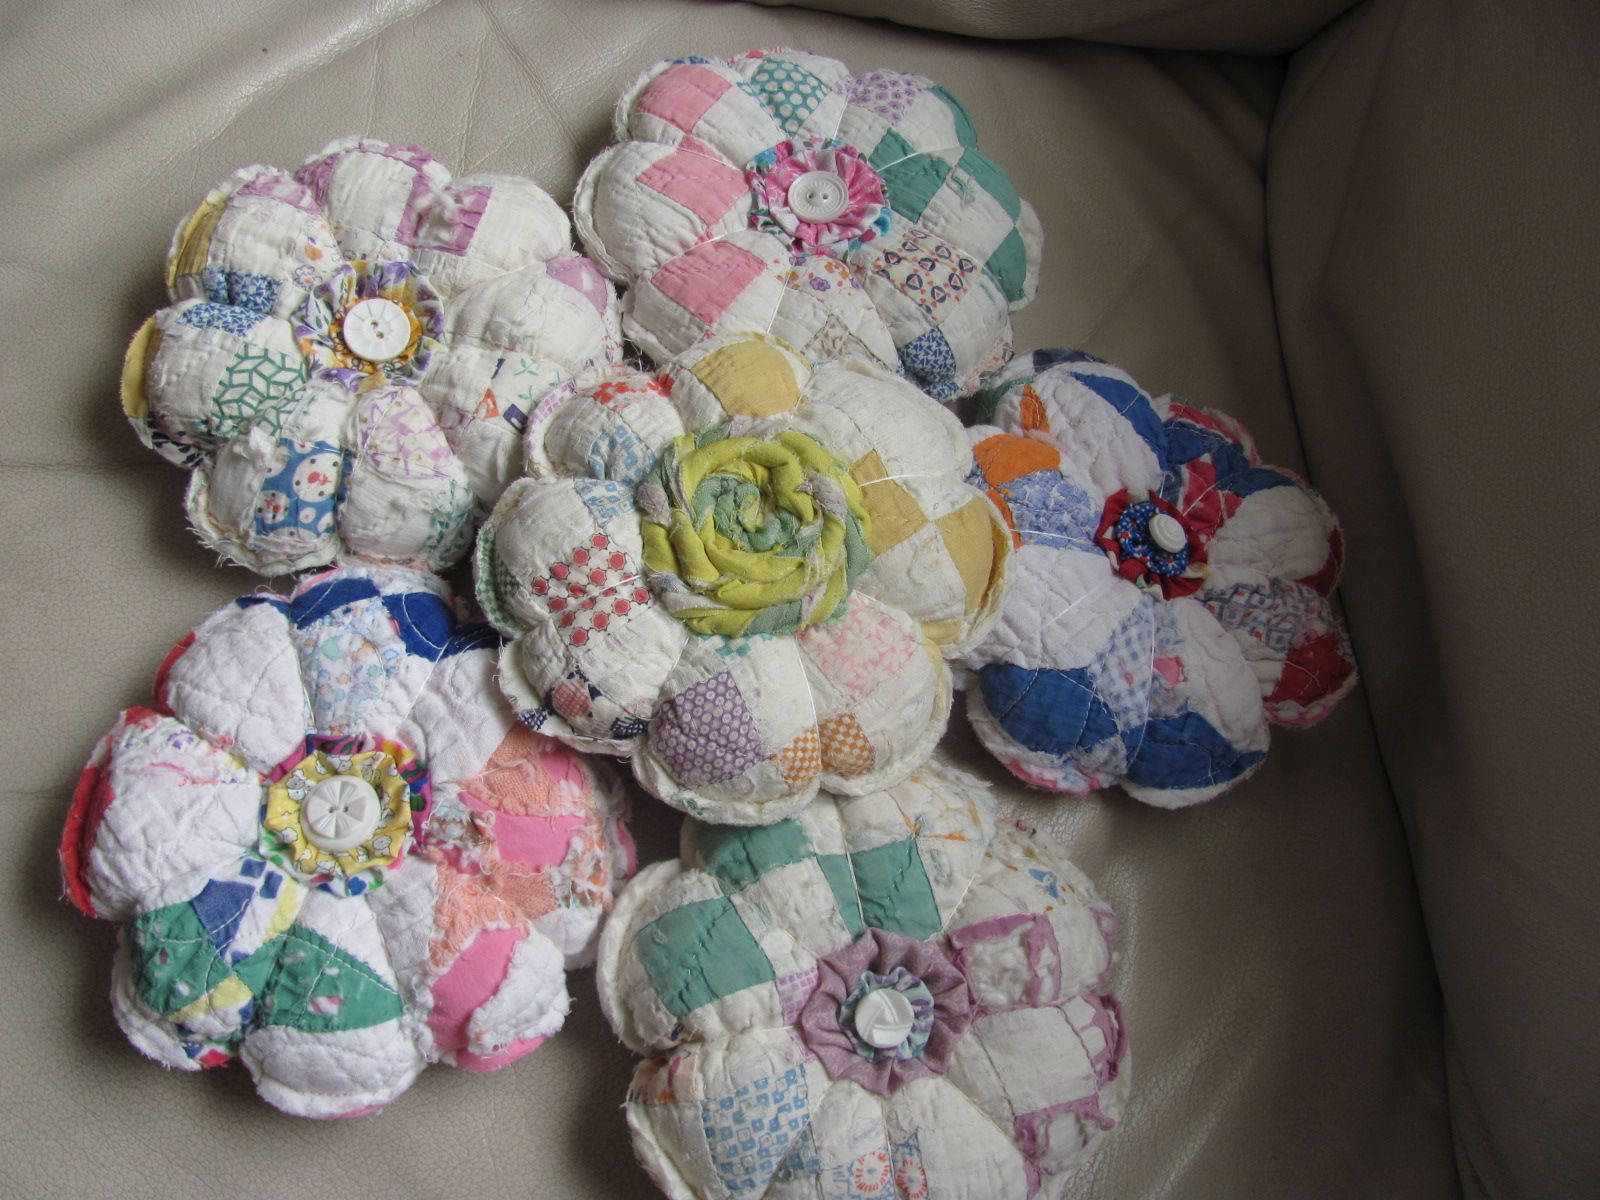 pincushions created by me from vintage cutter quilts.